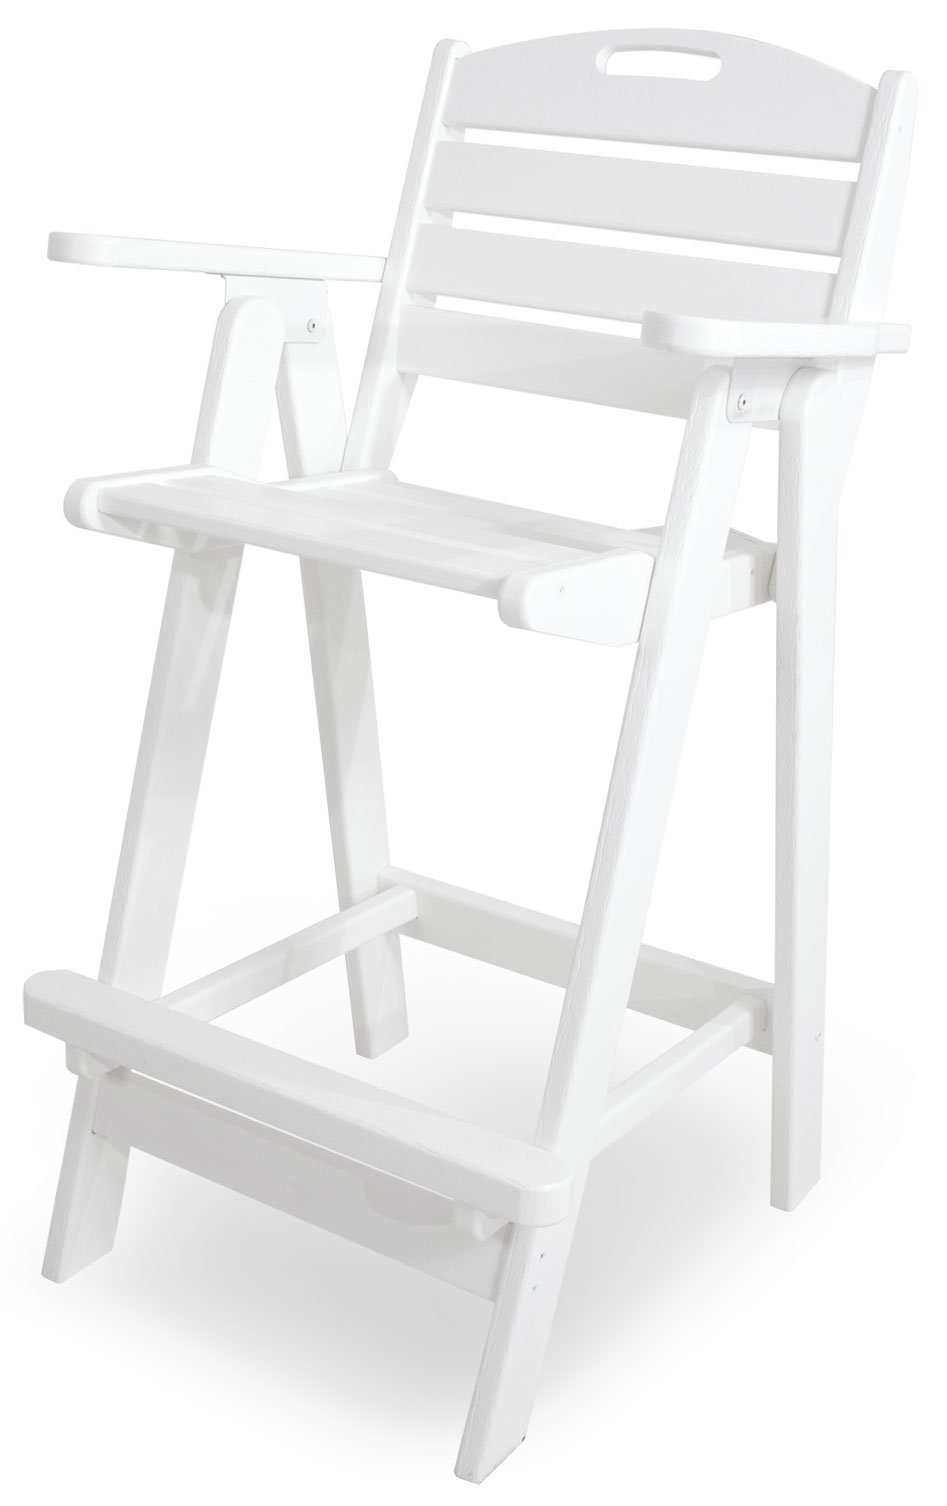 POLYWOOD NCB46WH Nautical Bar Chair, White by POLYWOOD (Image #1)